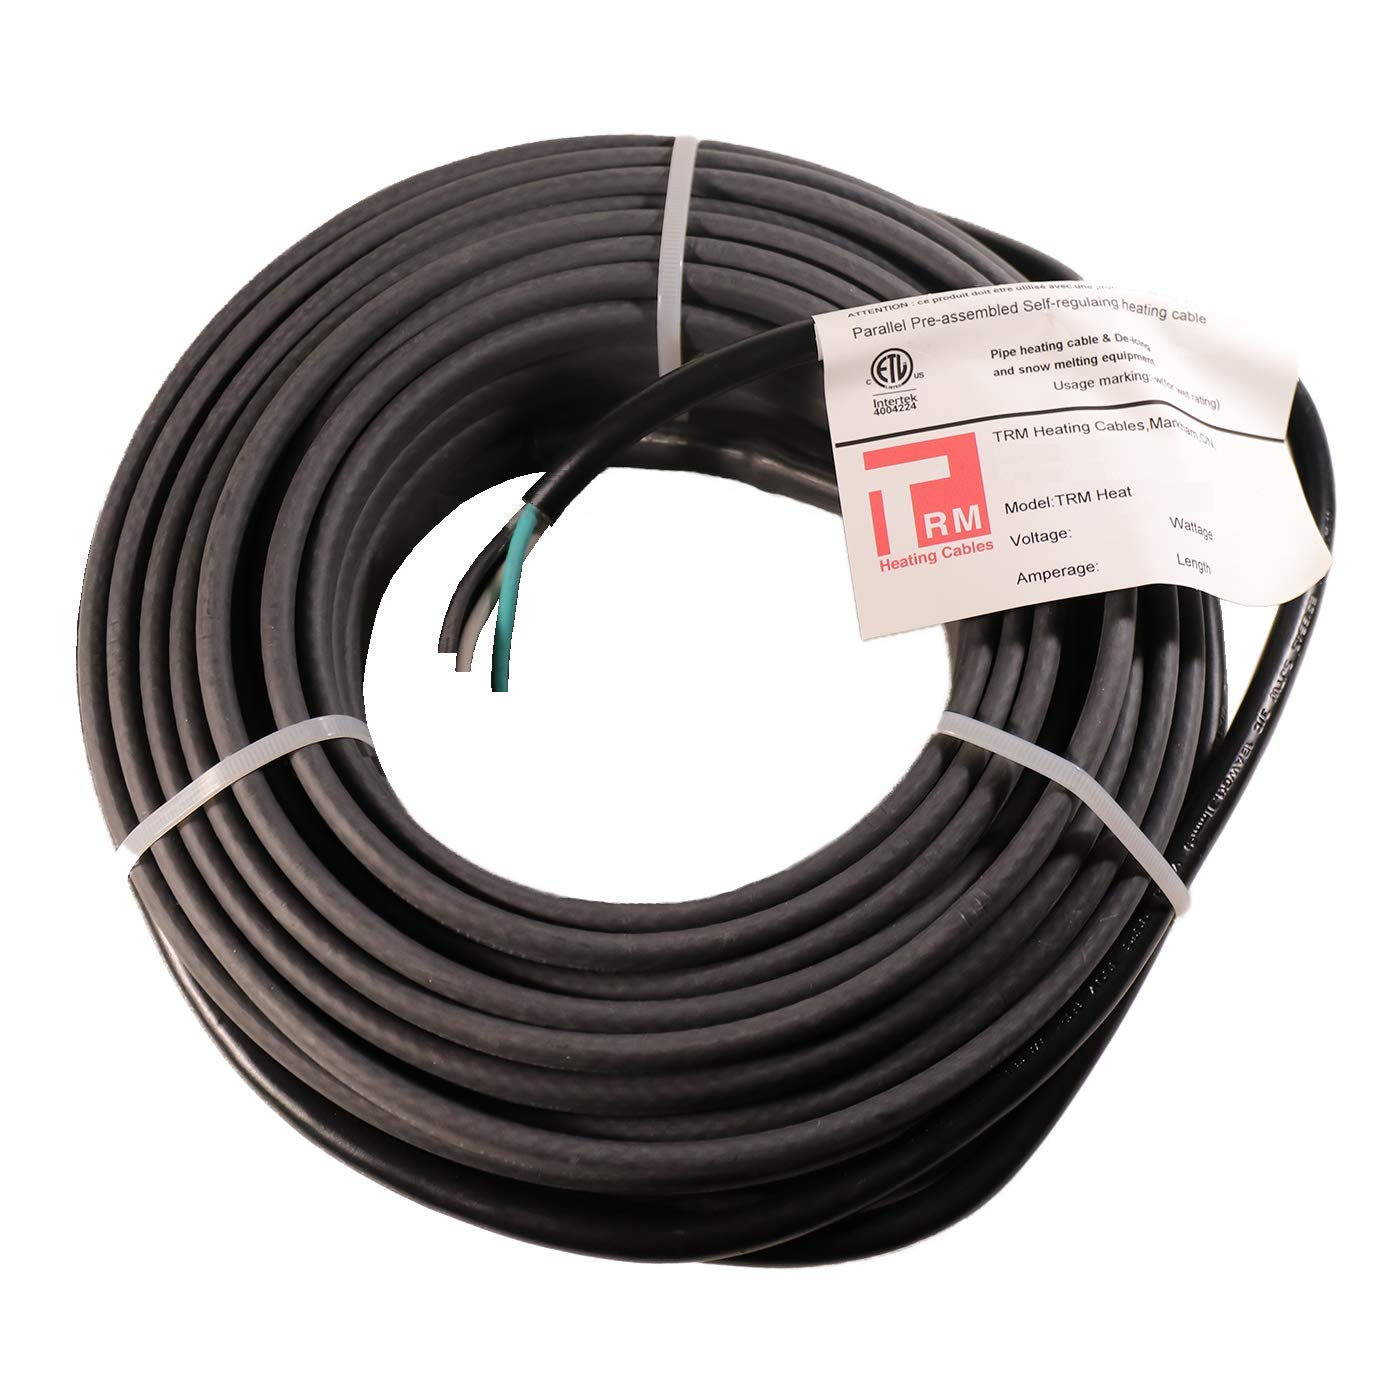 Thermal Resources Management Self-Regulating De-Icing Roof Heating Cable - for Heat Tracing and Ice Dam Prevention - Direct Plug-in System - 240 Volts (6 Feet + 6 Feet Cold Lead) by Thermal Resources Management